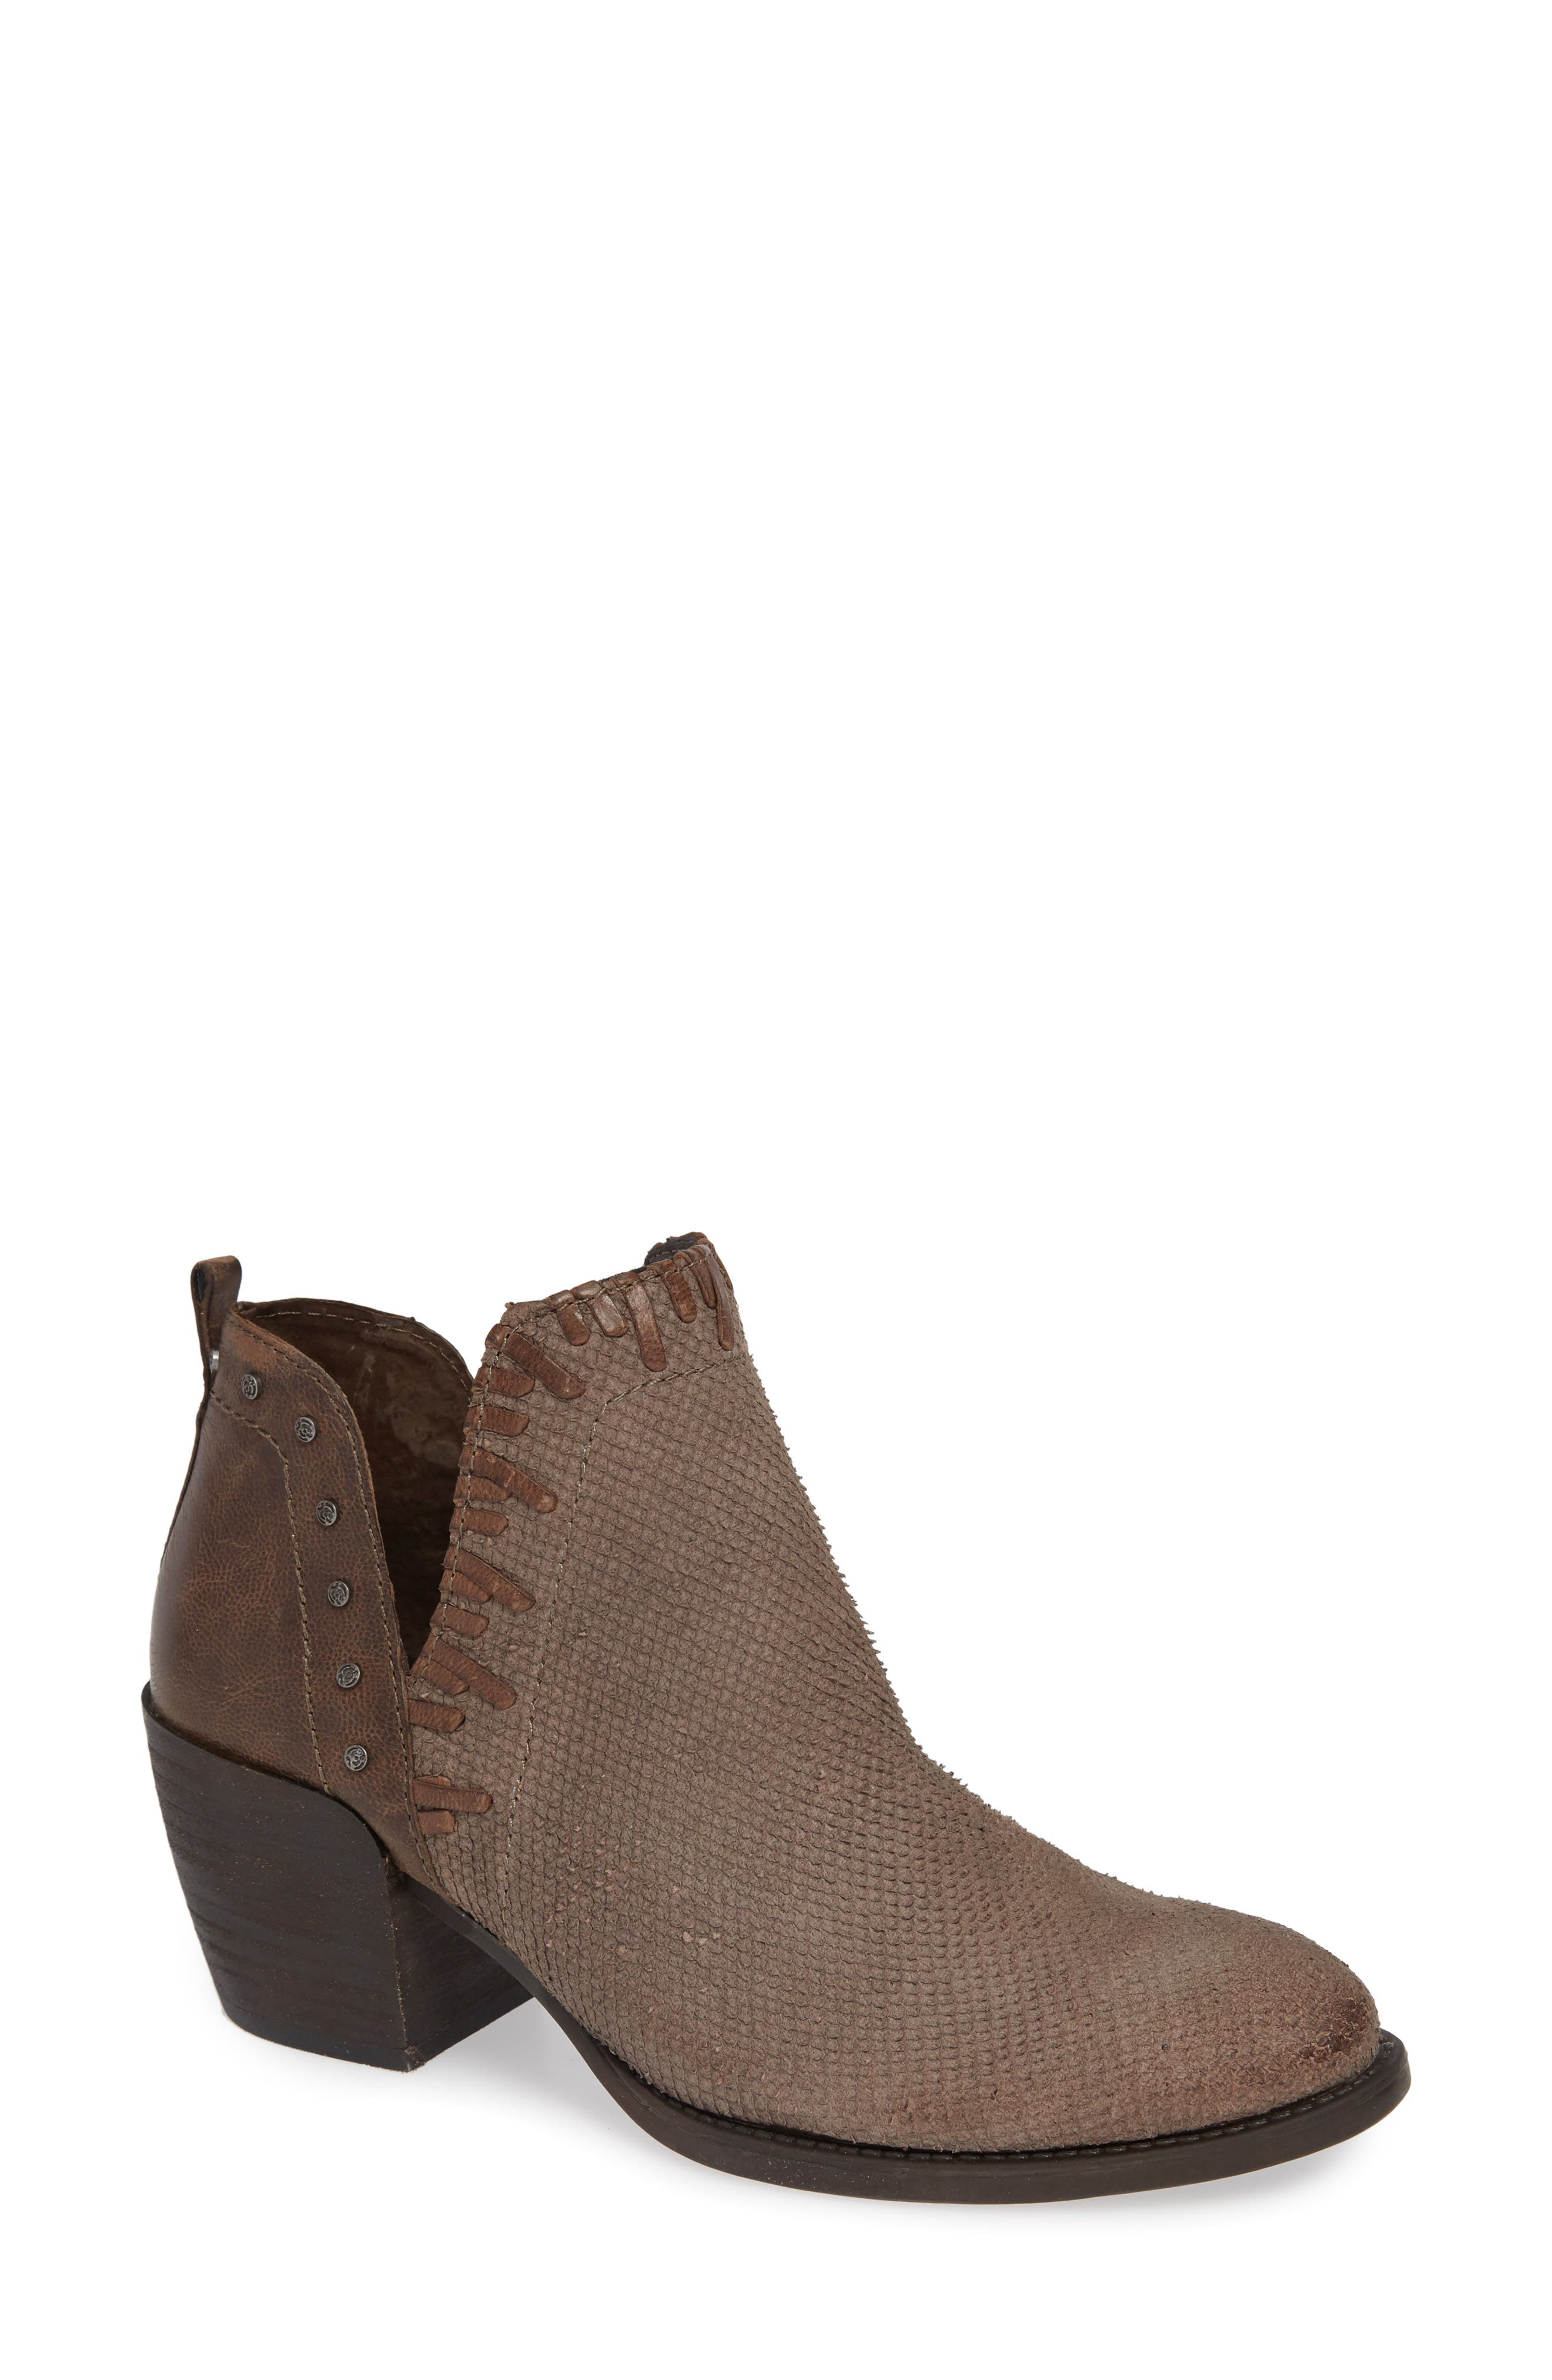 Santa Fe Ankle Bootie,                             Main thumbnail 1, color,                             CINDER LEATHER